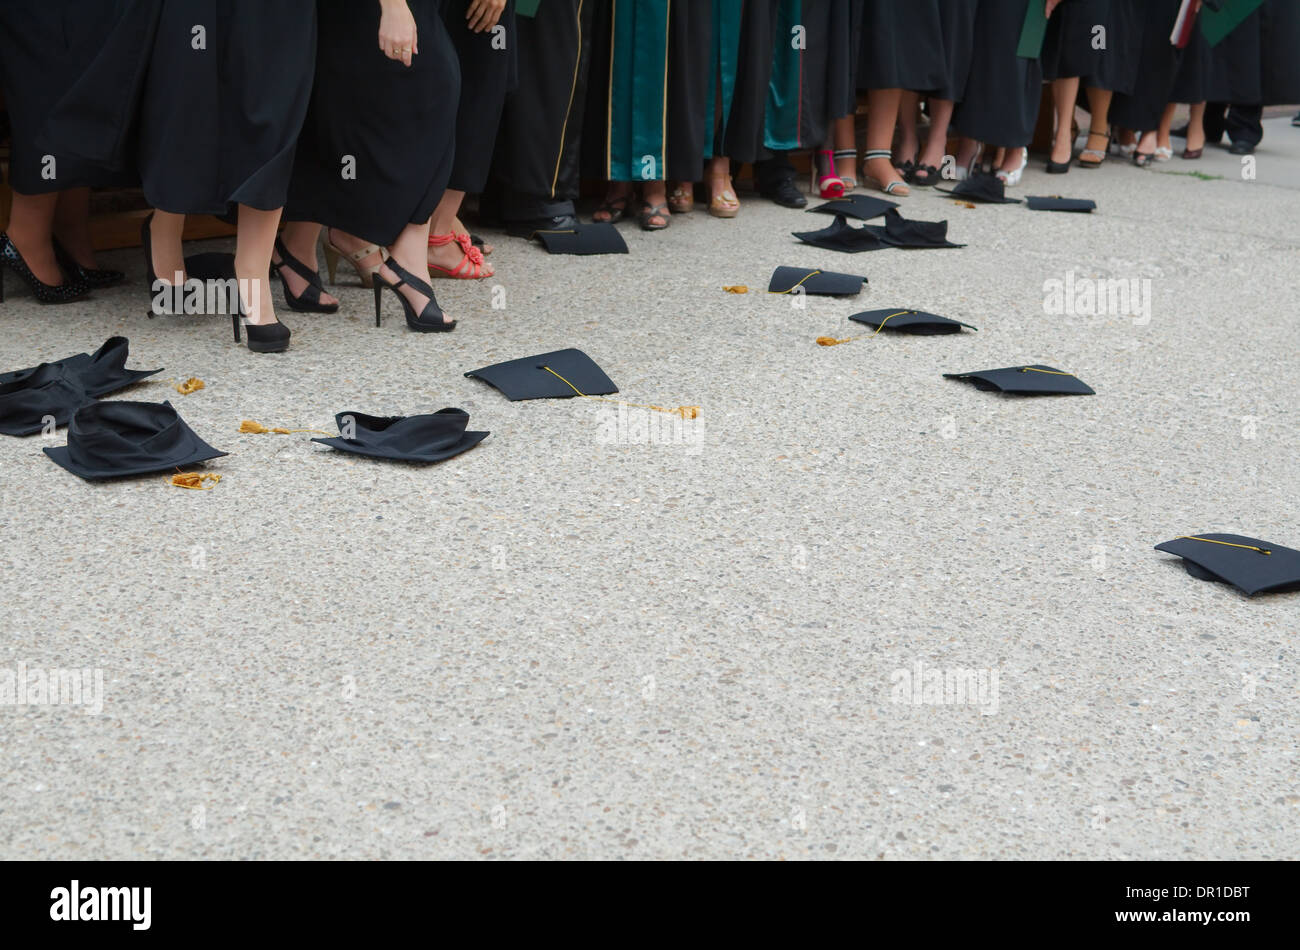 Fallen Square Academic Caps at Graduation Ceremony - Stock Image